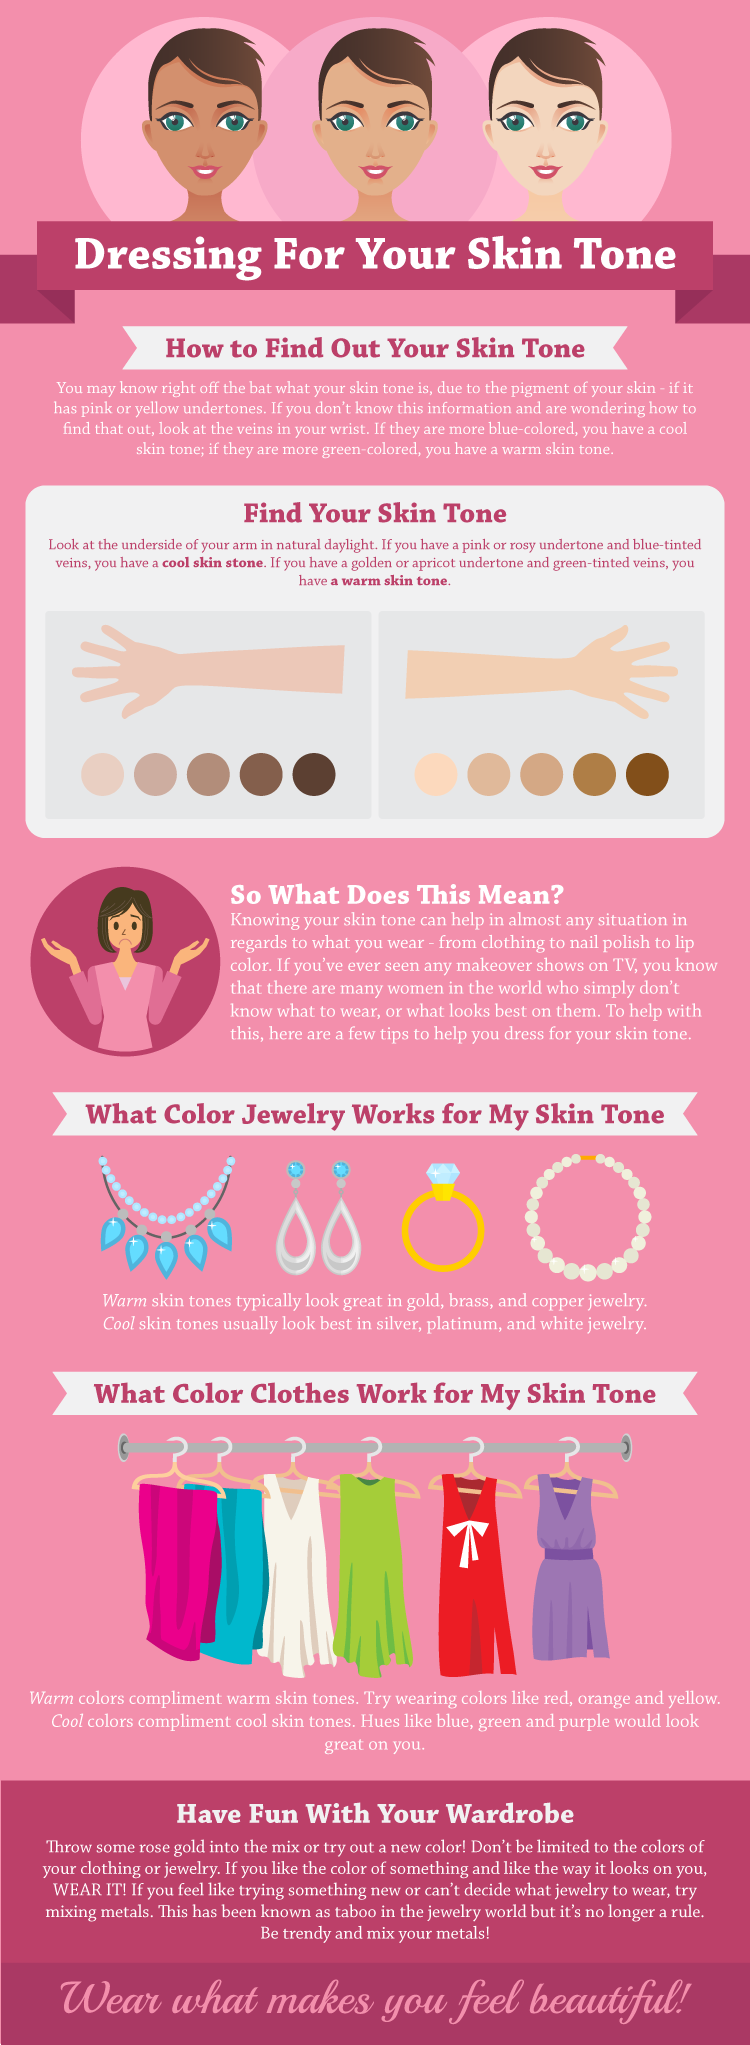 find out how to dress for your skin tone